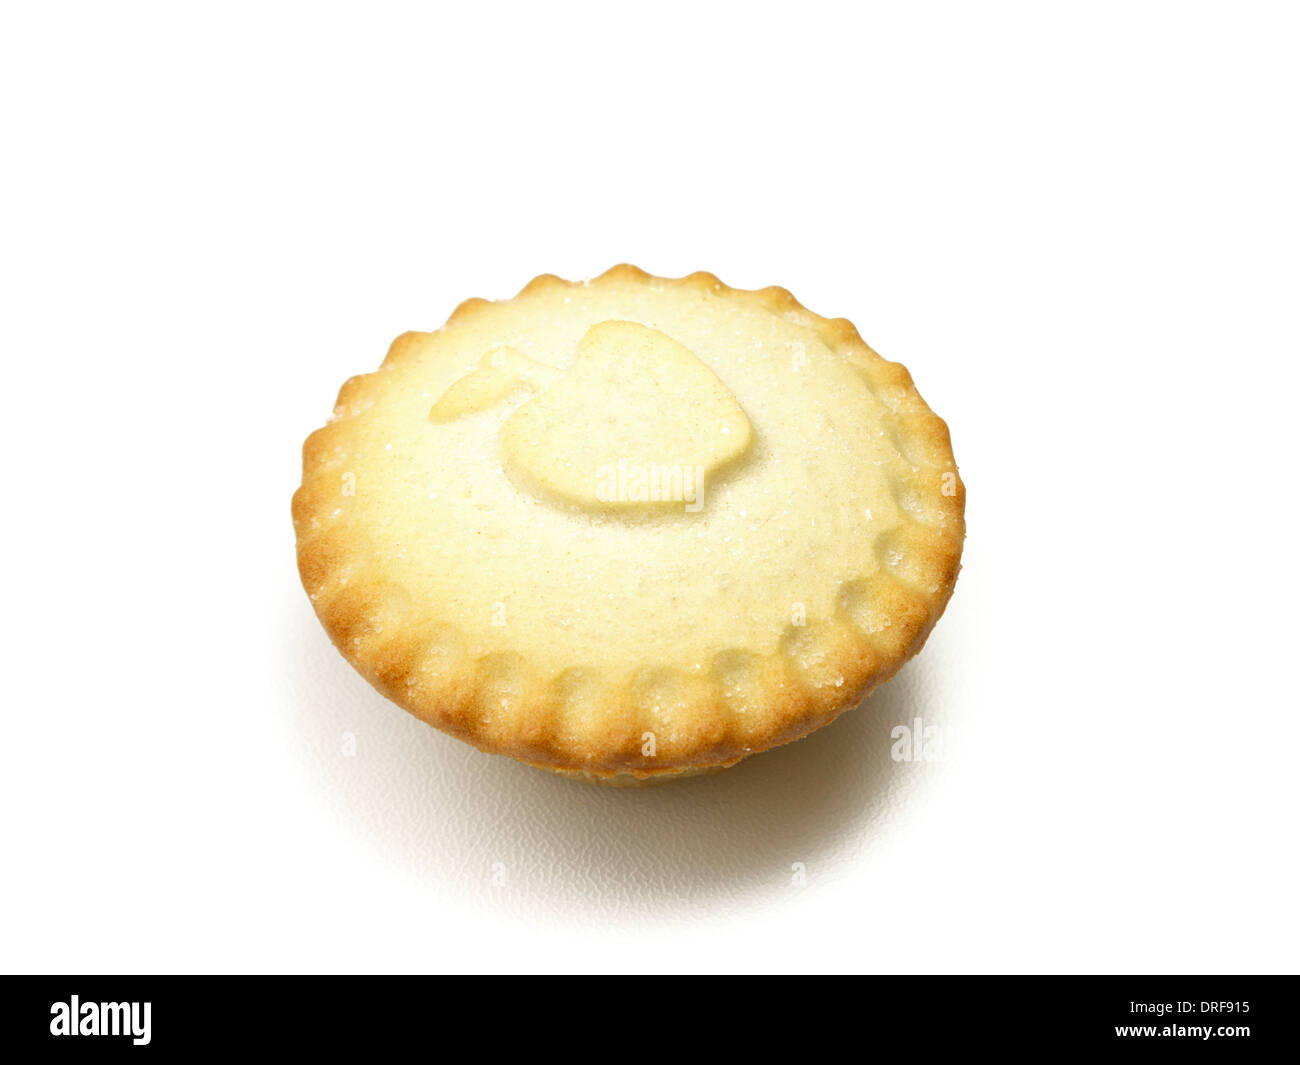 Small whole individual Bramley apple pie with apple shaped design isolated on a white background. England, UK, Britain - Stock Image